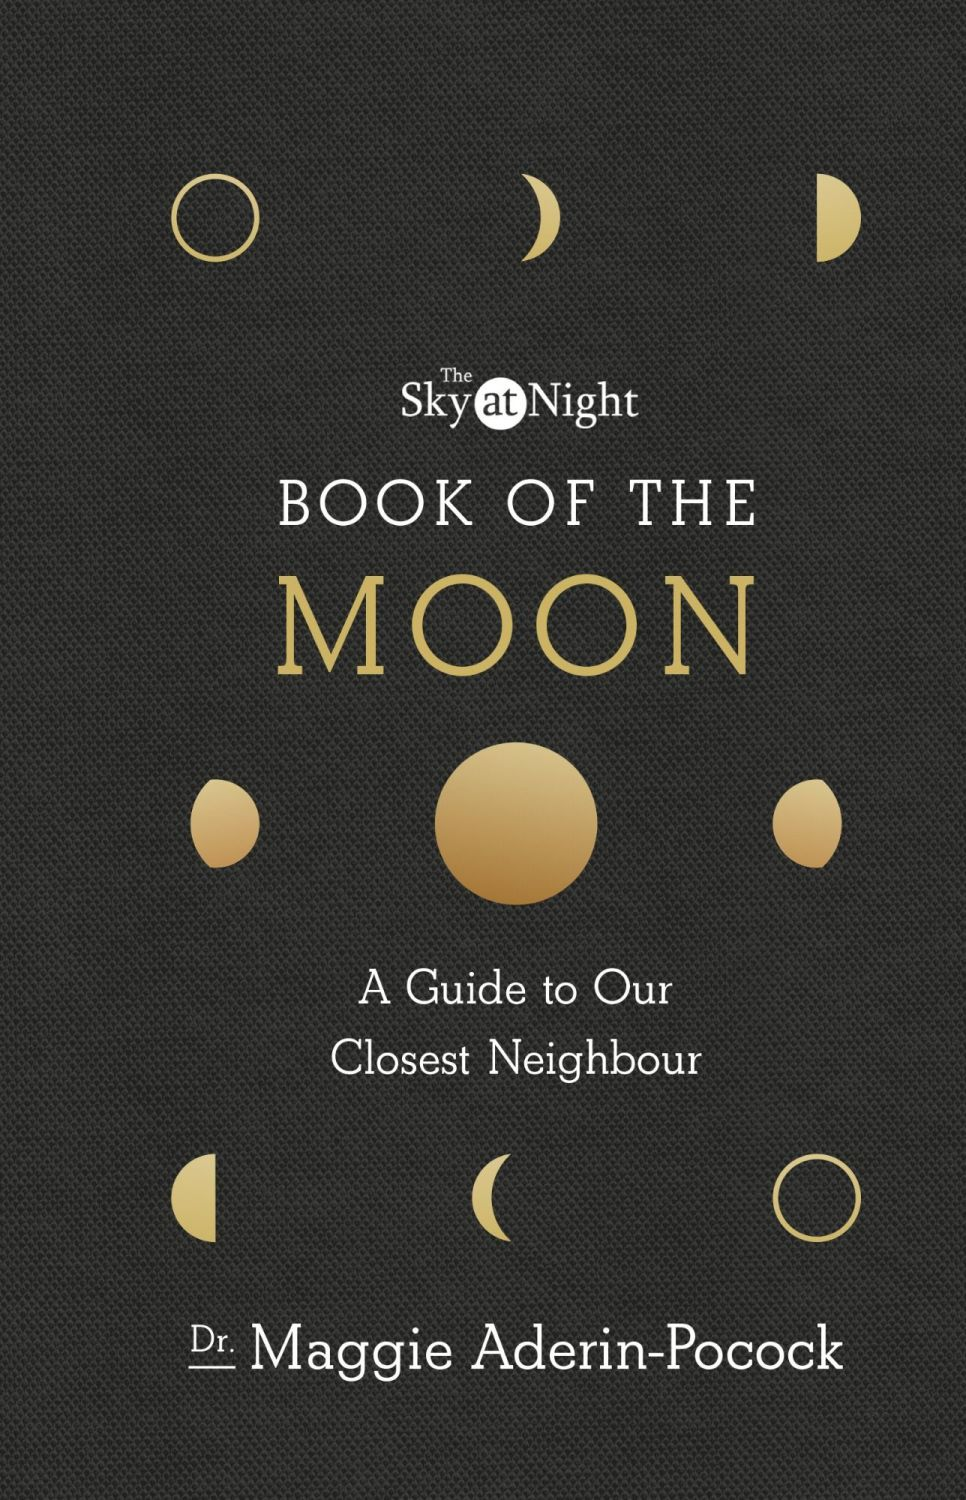 Book of the Moon by Maggie Aderin-Pocock